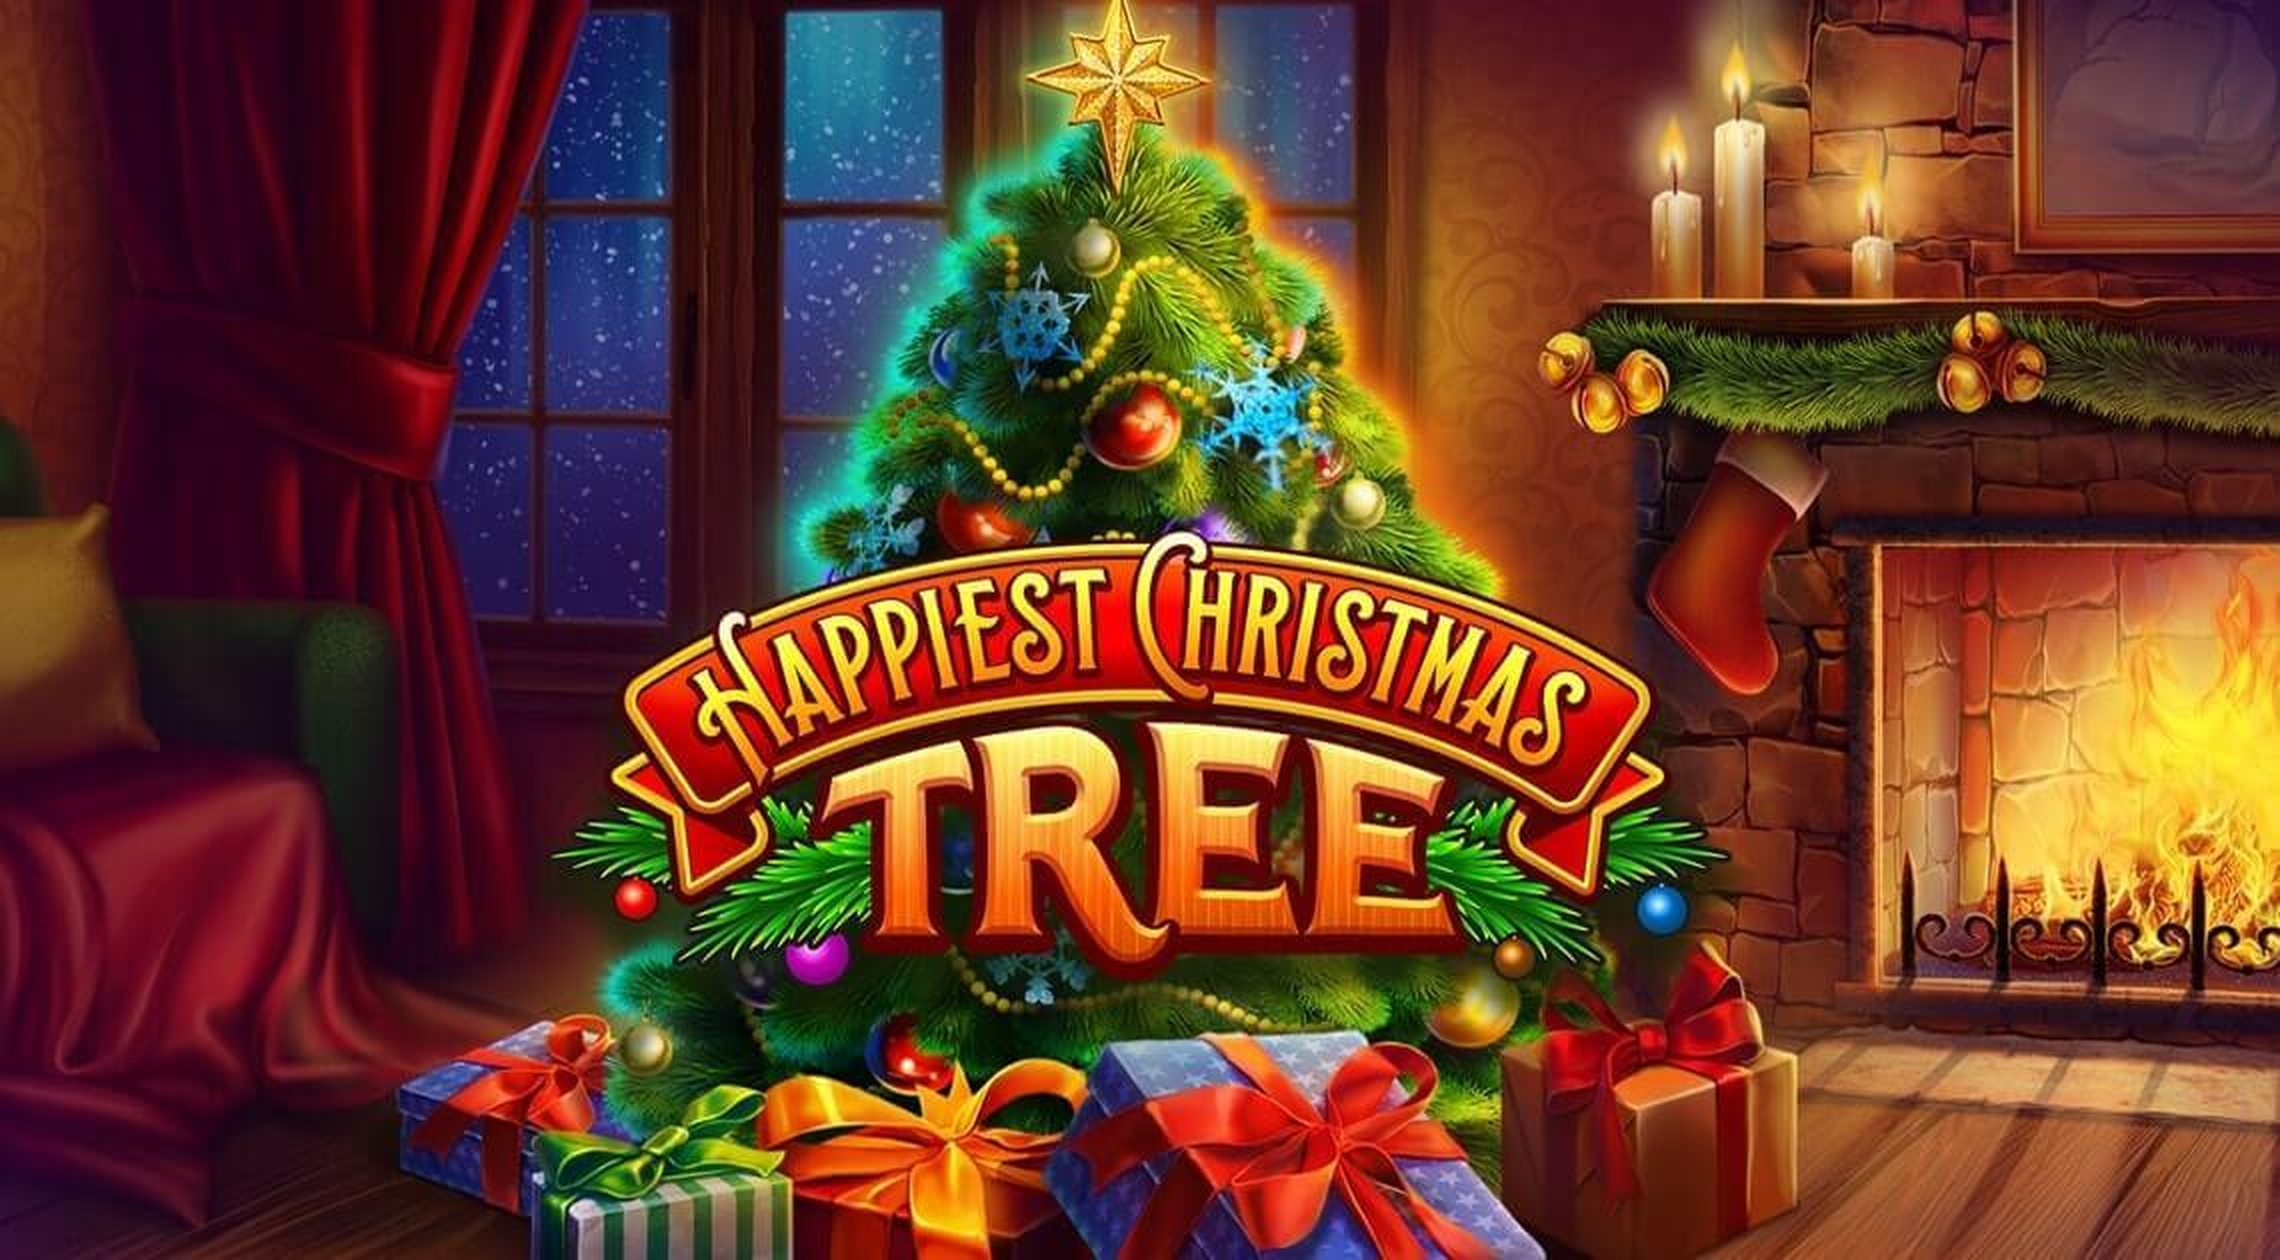 Happiest Christmas Tree Online Slot Demo Game by Habanero